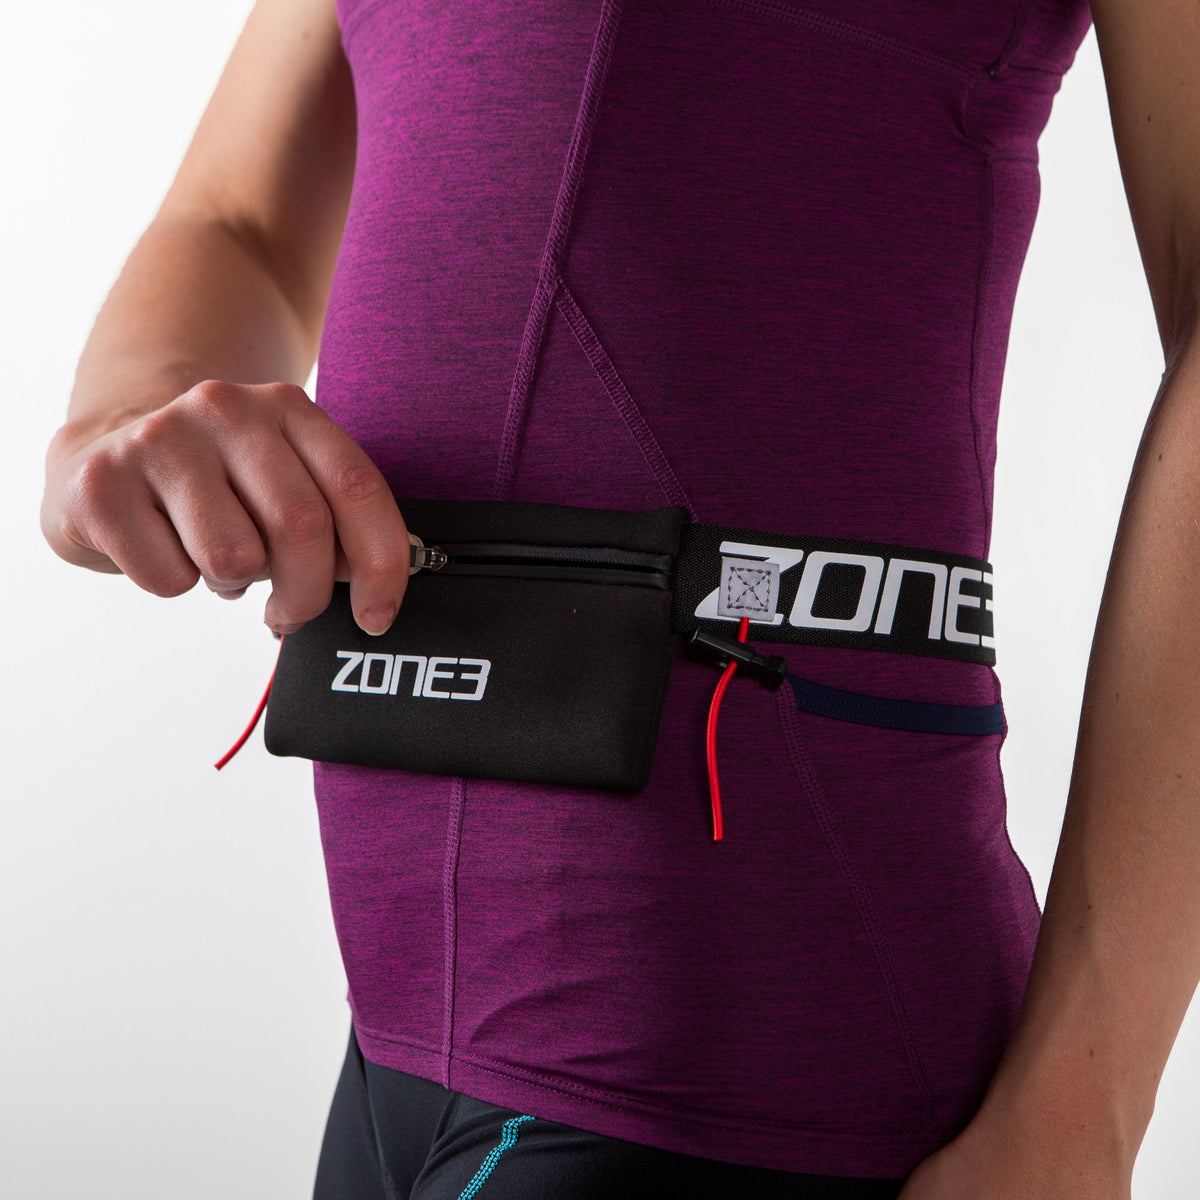 Endurance Number Belt with Neoprene Fuel Pouch and Energy Gel Storage zip